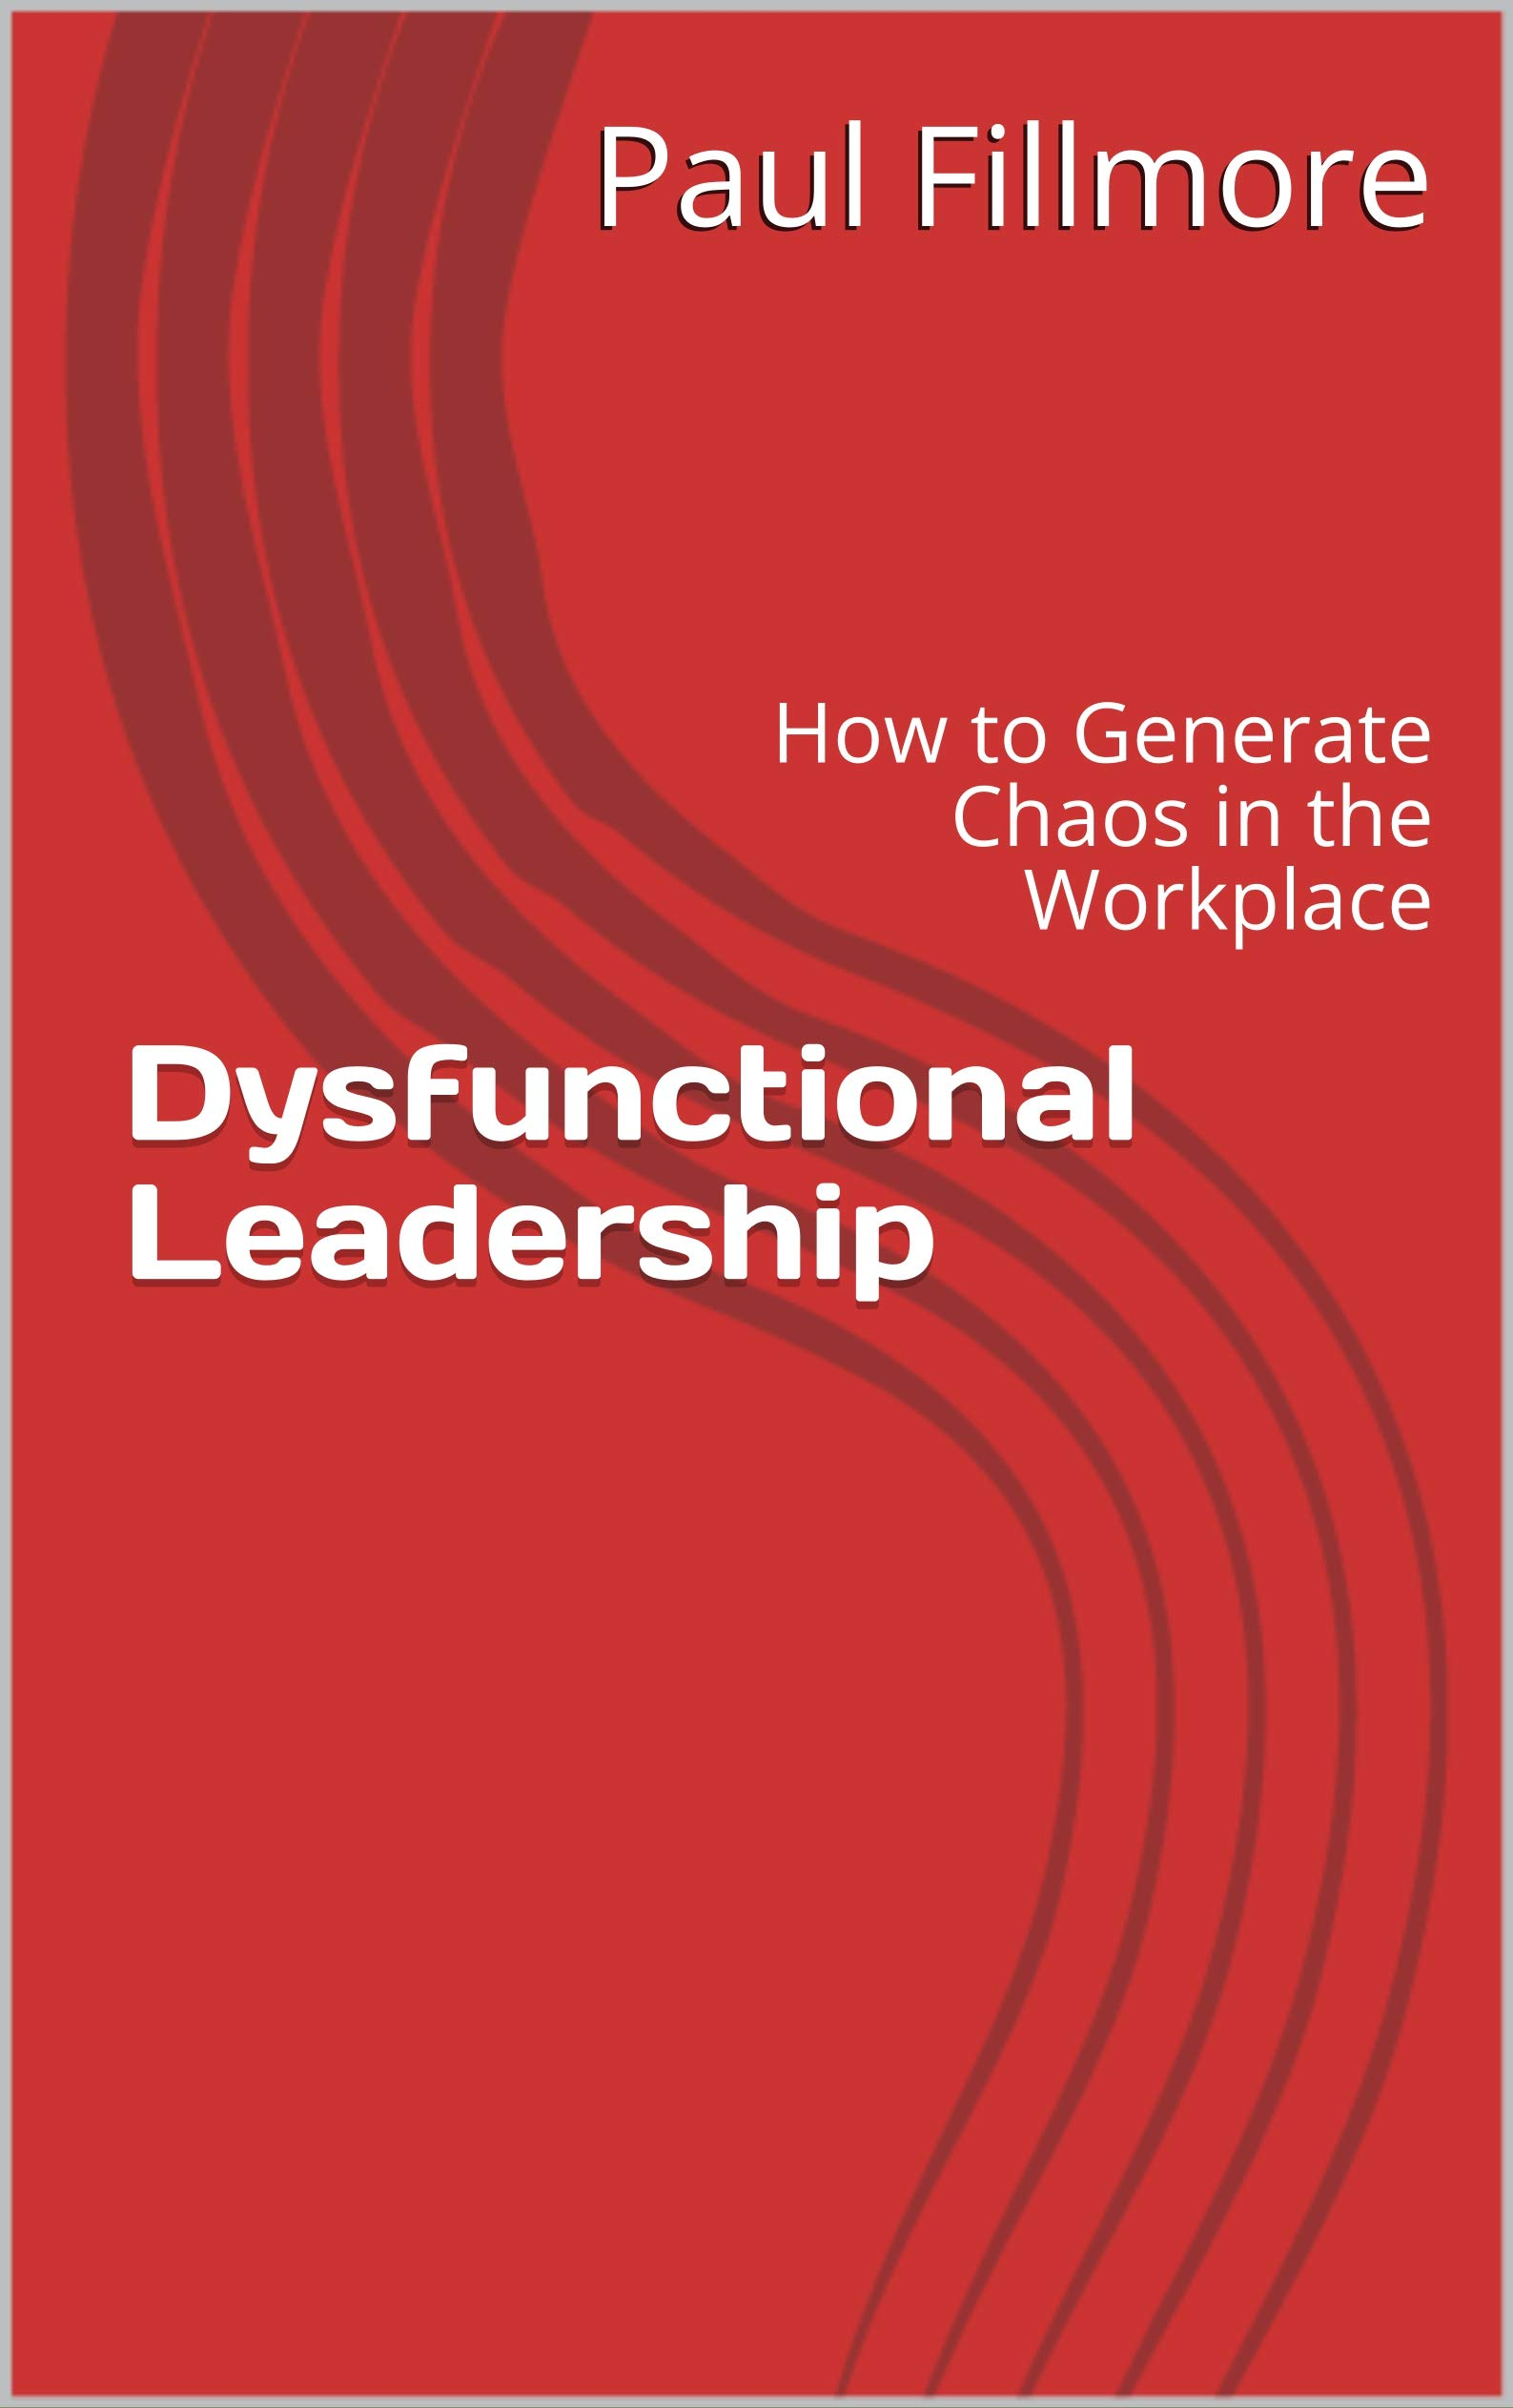 Dysfunctional Leadership: How to Generate Chaos in the Workplace